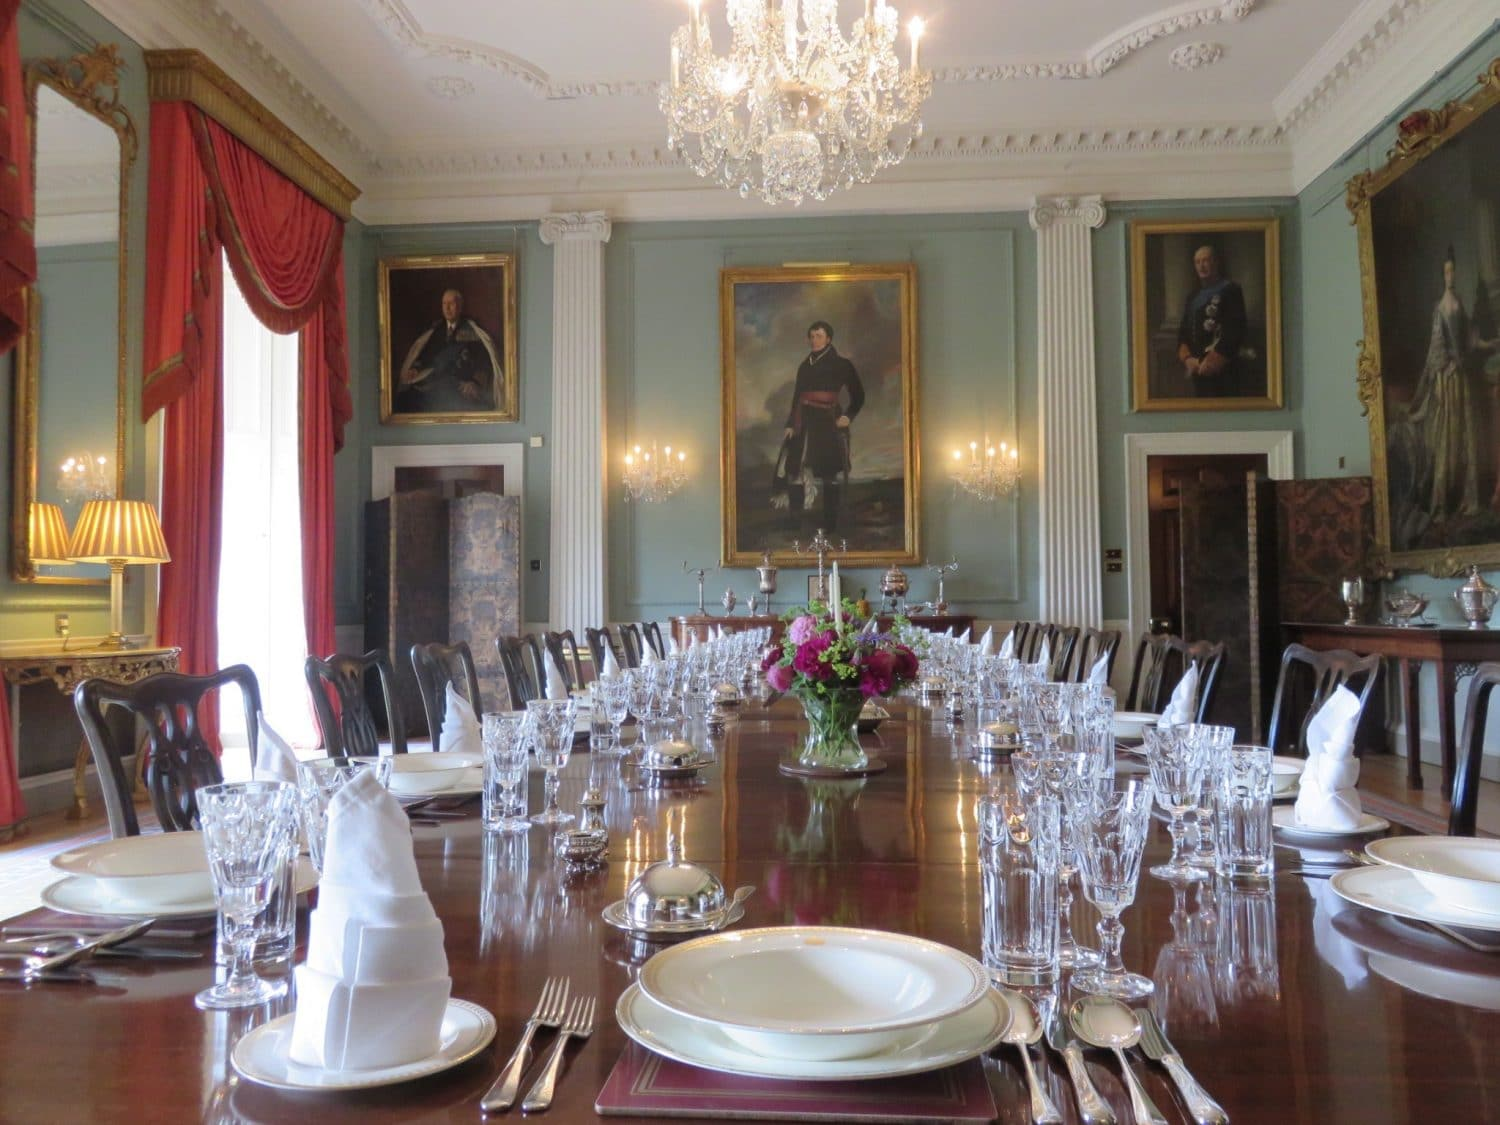 Northern Ireland Weekend Break - Royal Dining Room